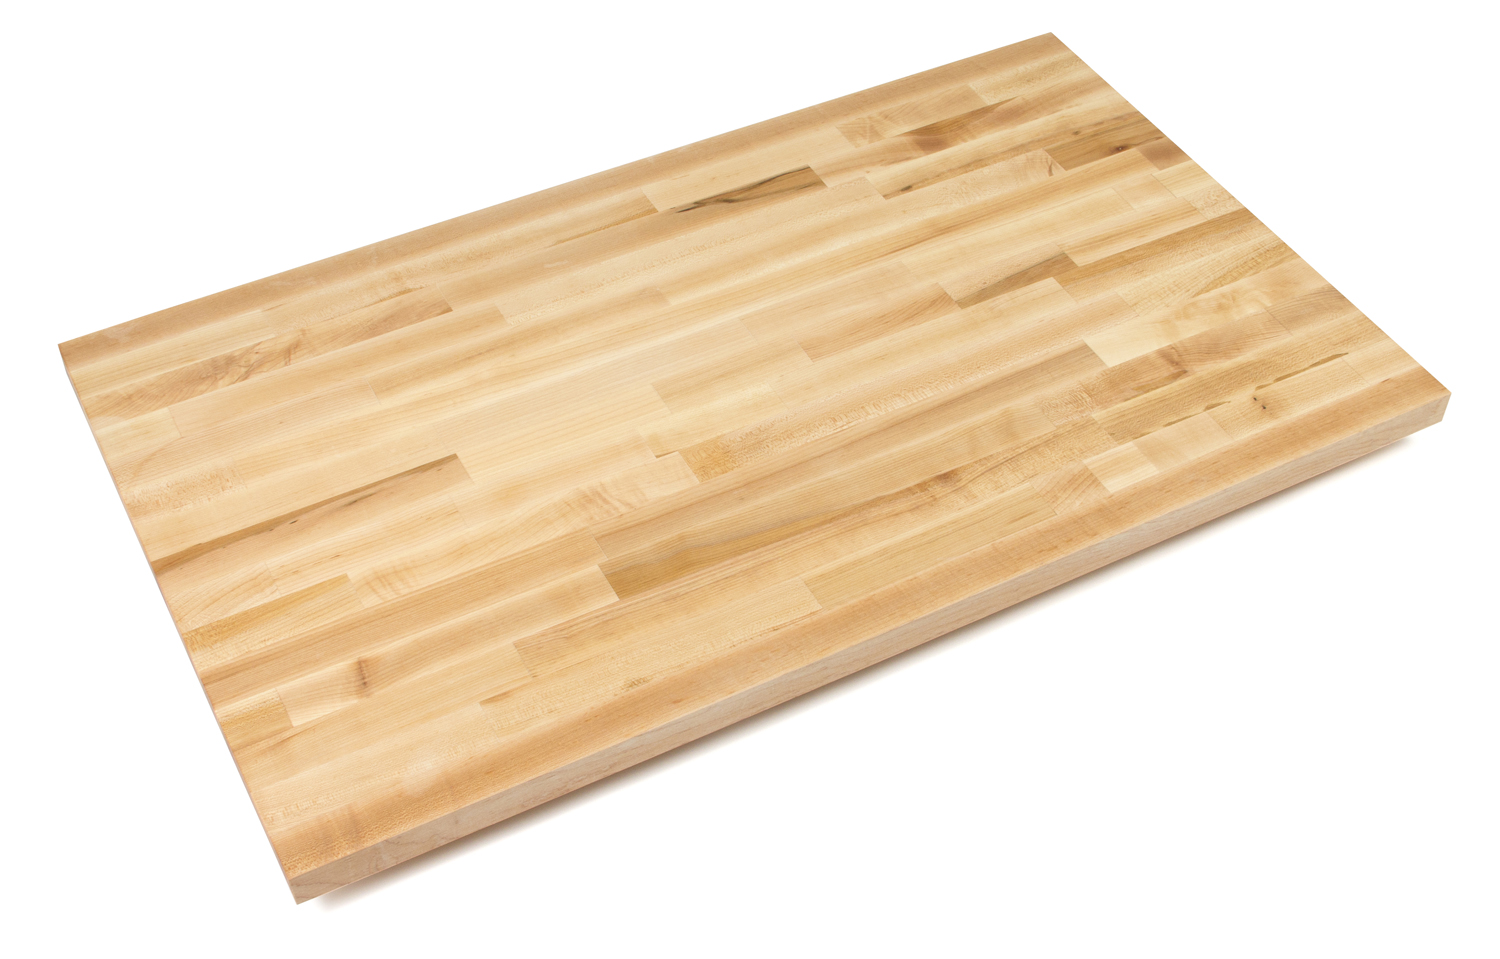 1.5 inch thick blended maple countertop 32 inches wide - John Boos